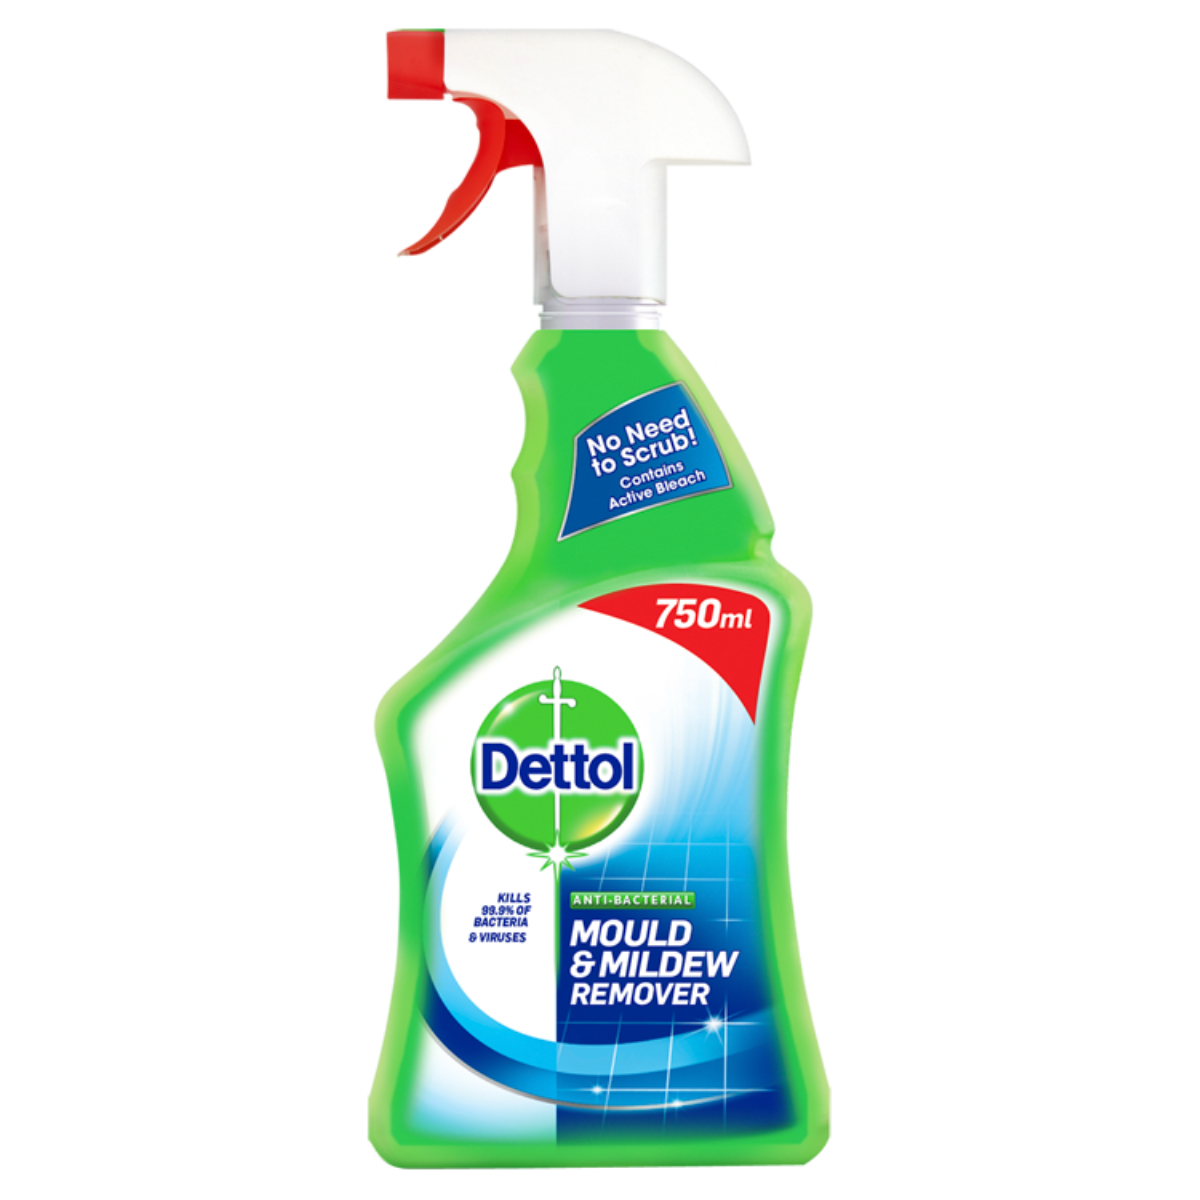 Mould And Mildew Remover For Bathrooms Dettol